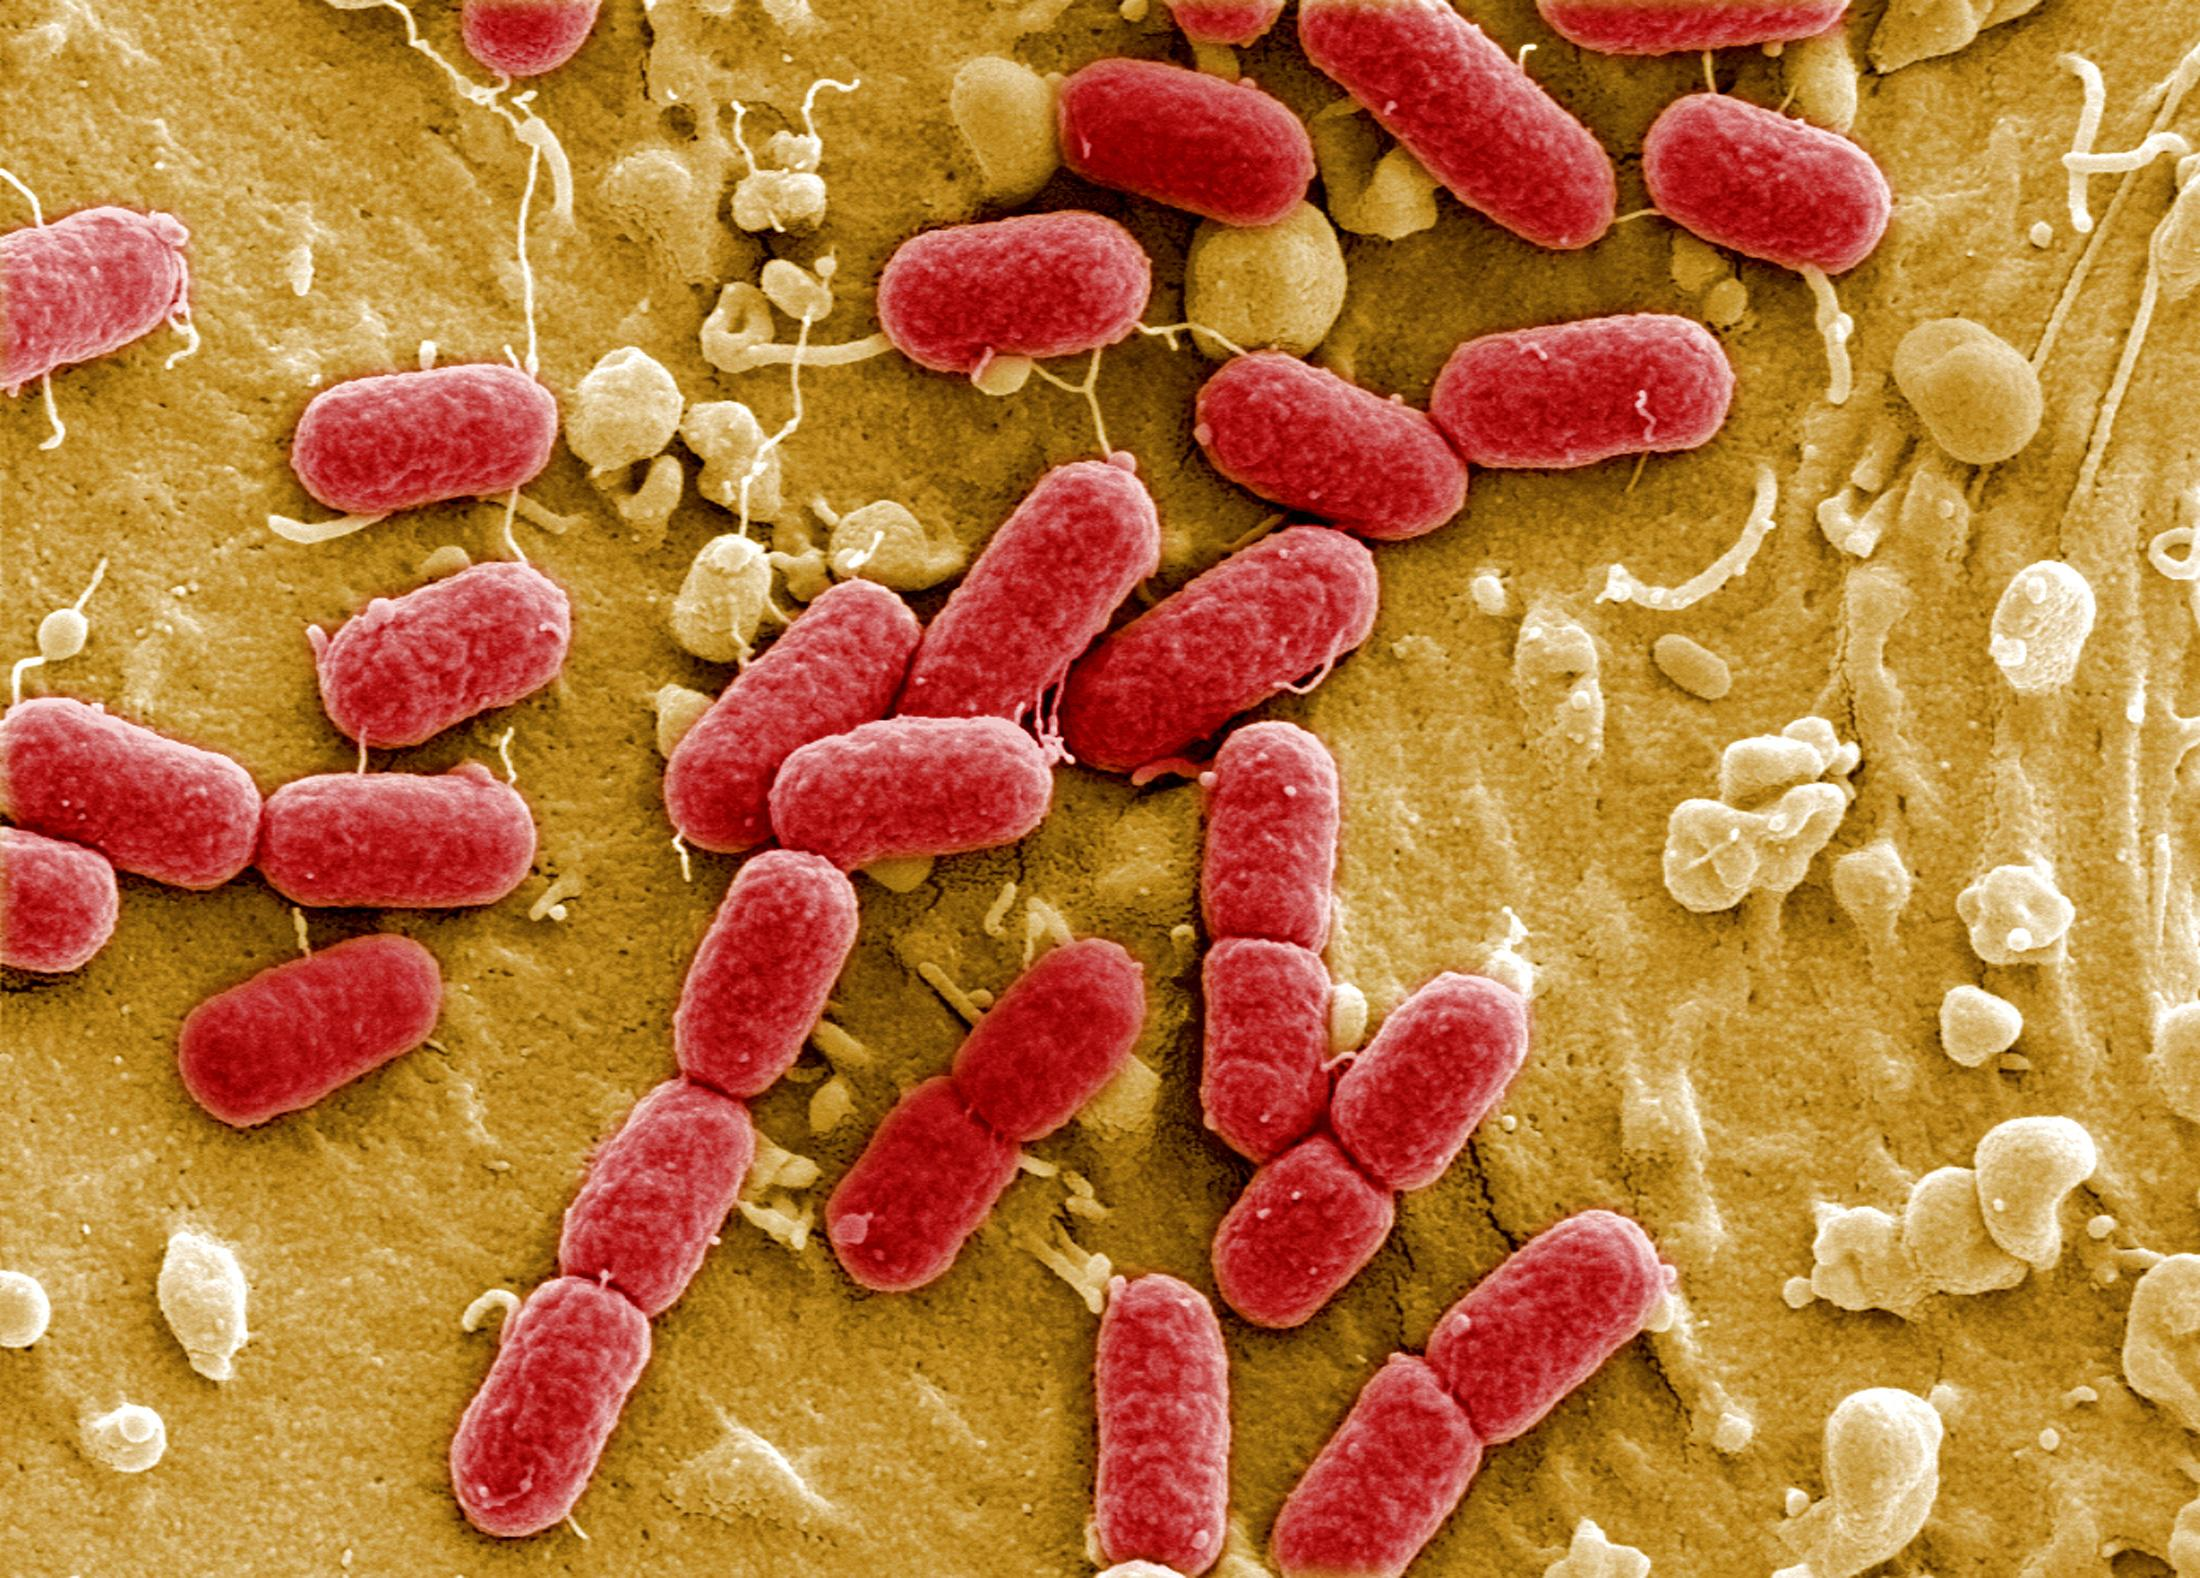 Bacteria on Fresh Meat and Other Foods Does